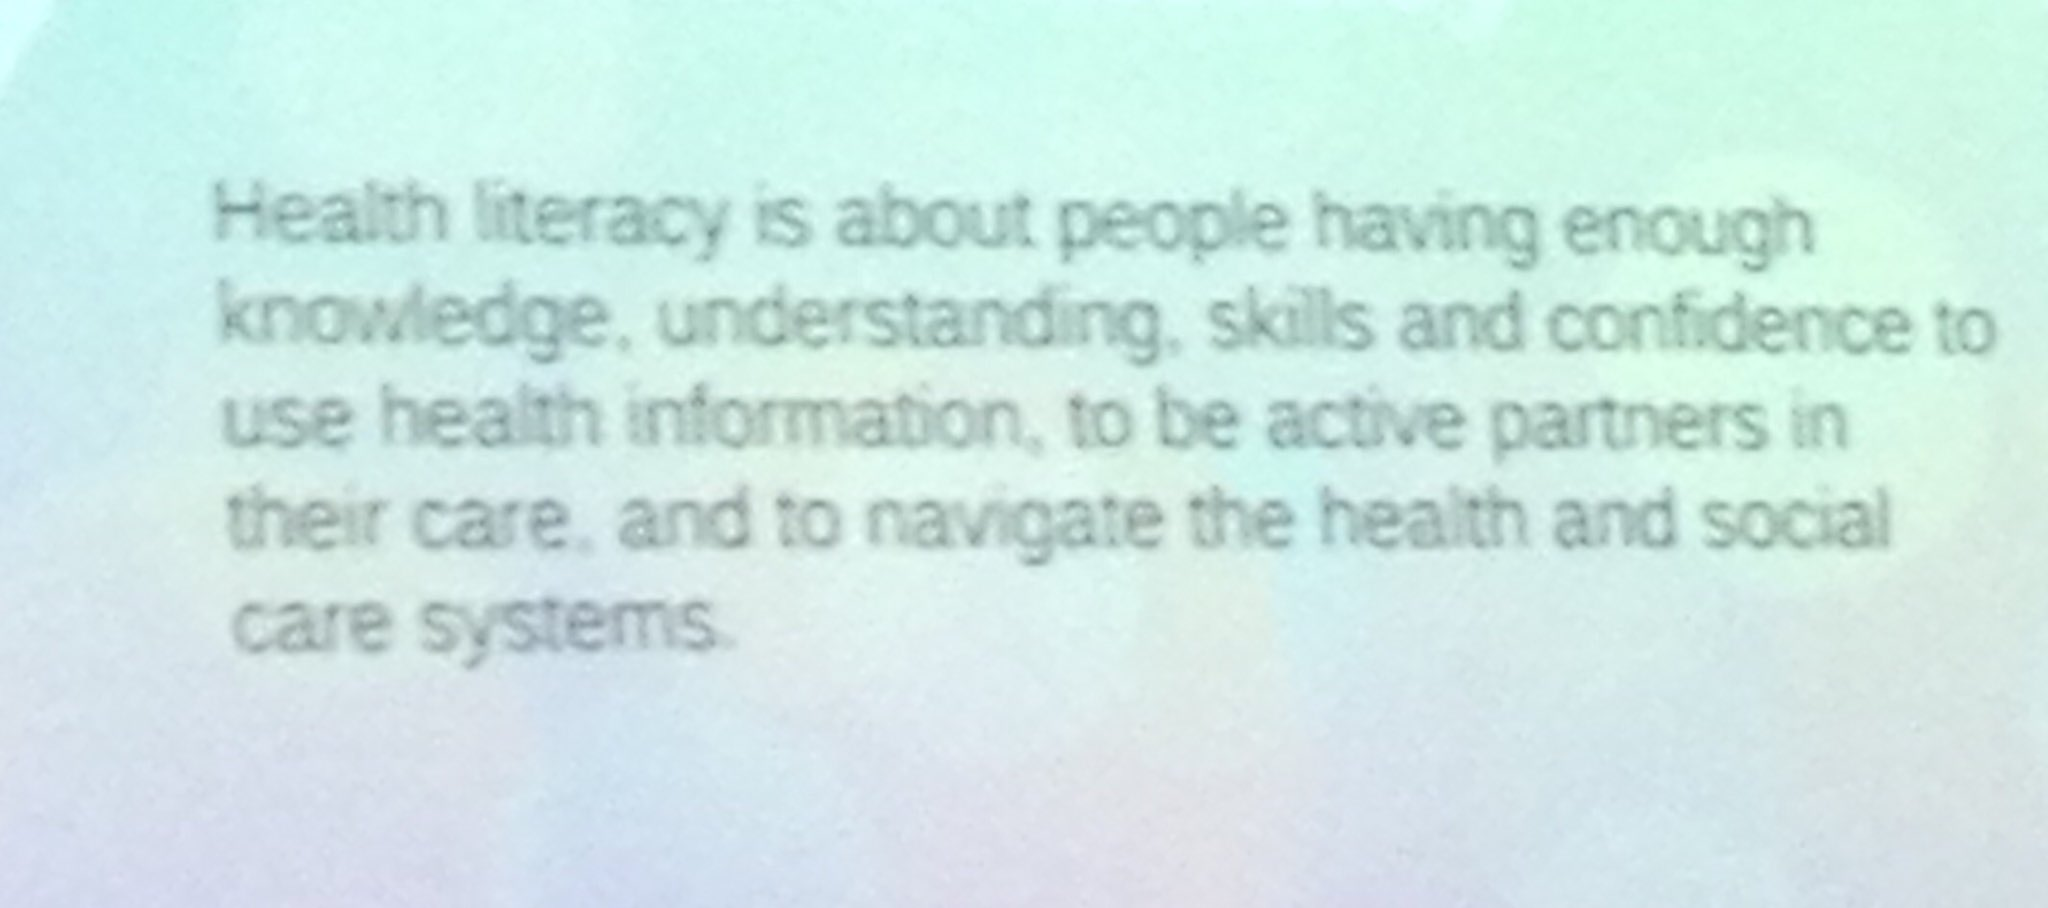 #scotinfolit @athain shares #healthliteracy definition and website https://t.co/JcAMqj3yEo https://t.co/R1RvDet21C